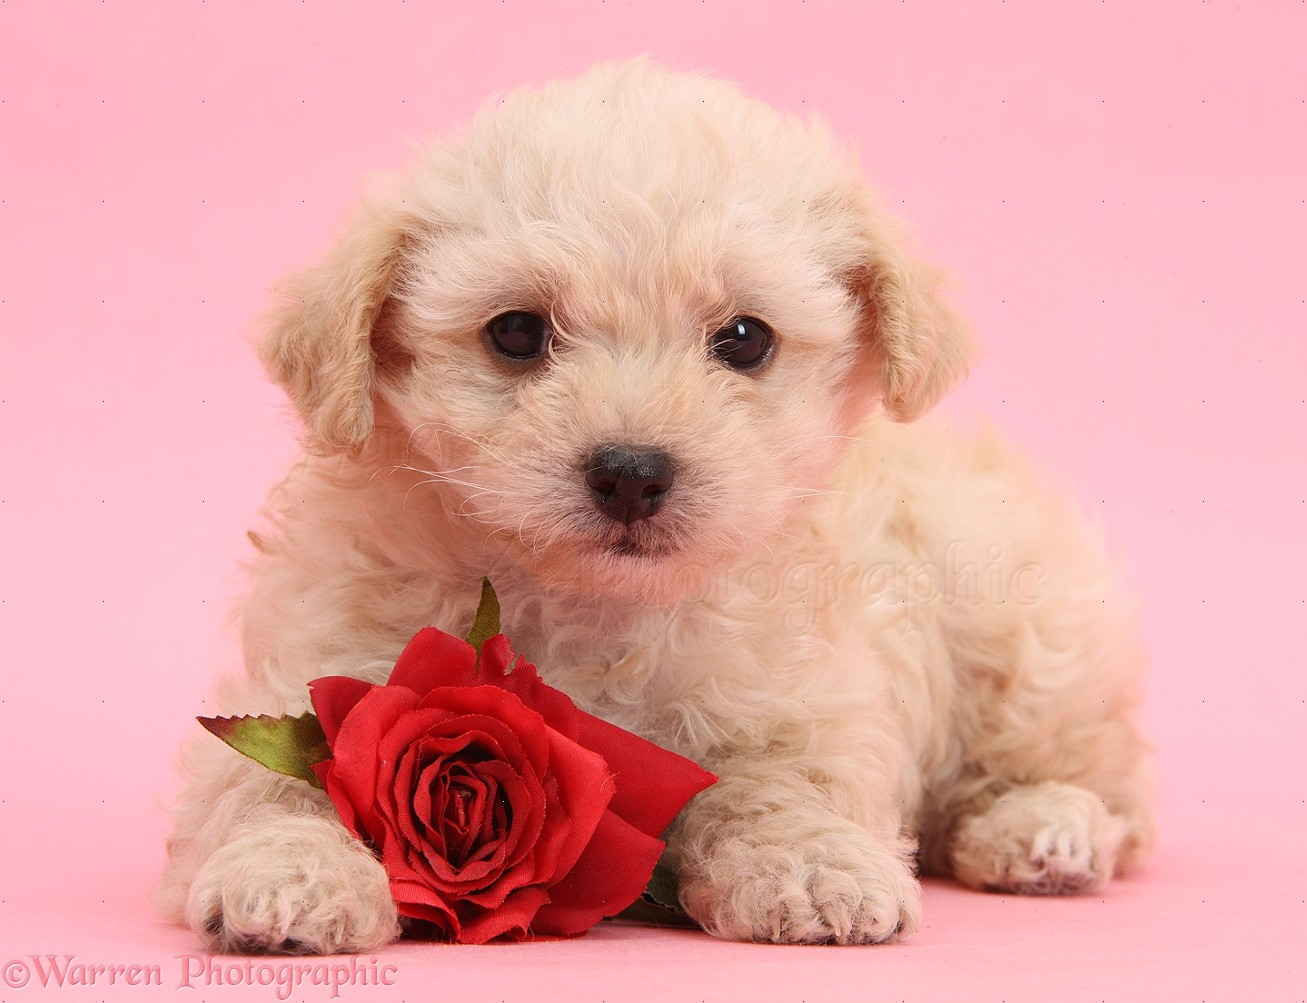 Cute Girl Hd Wallpaper For Laptop Dog Cute Valentine Puppy With Rose On Pink Background